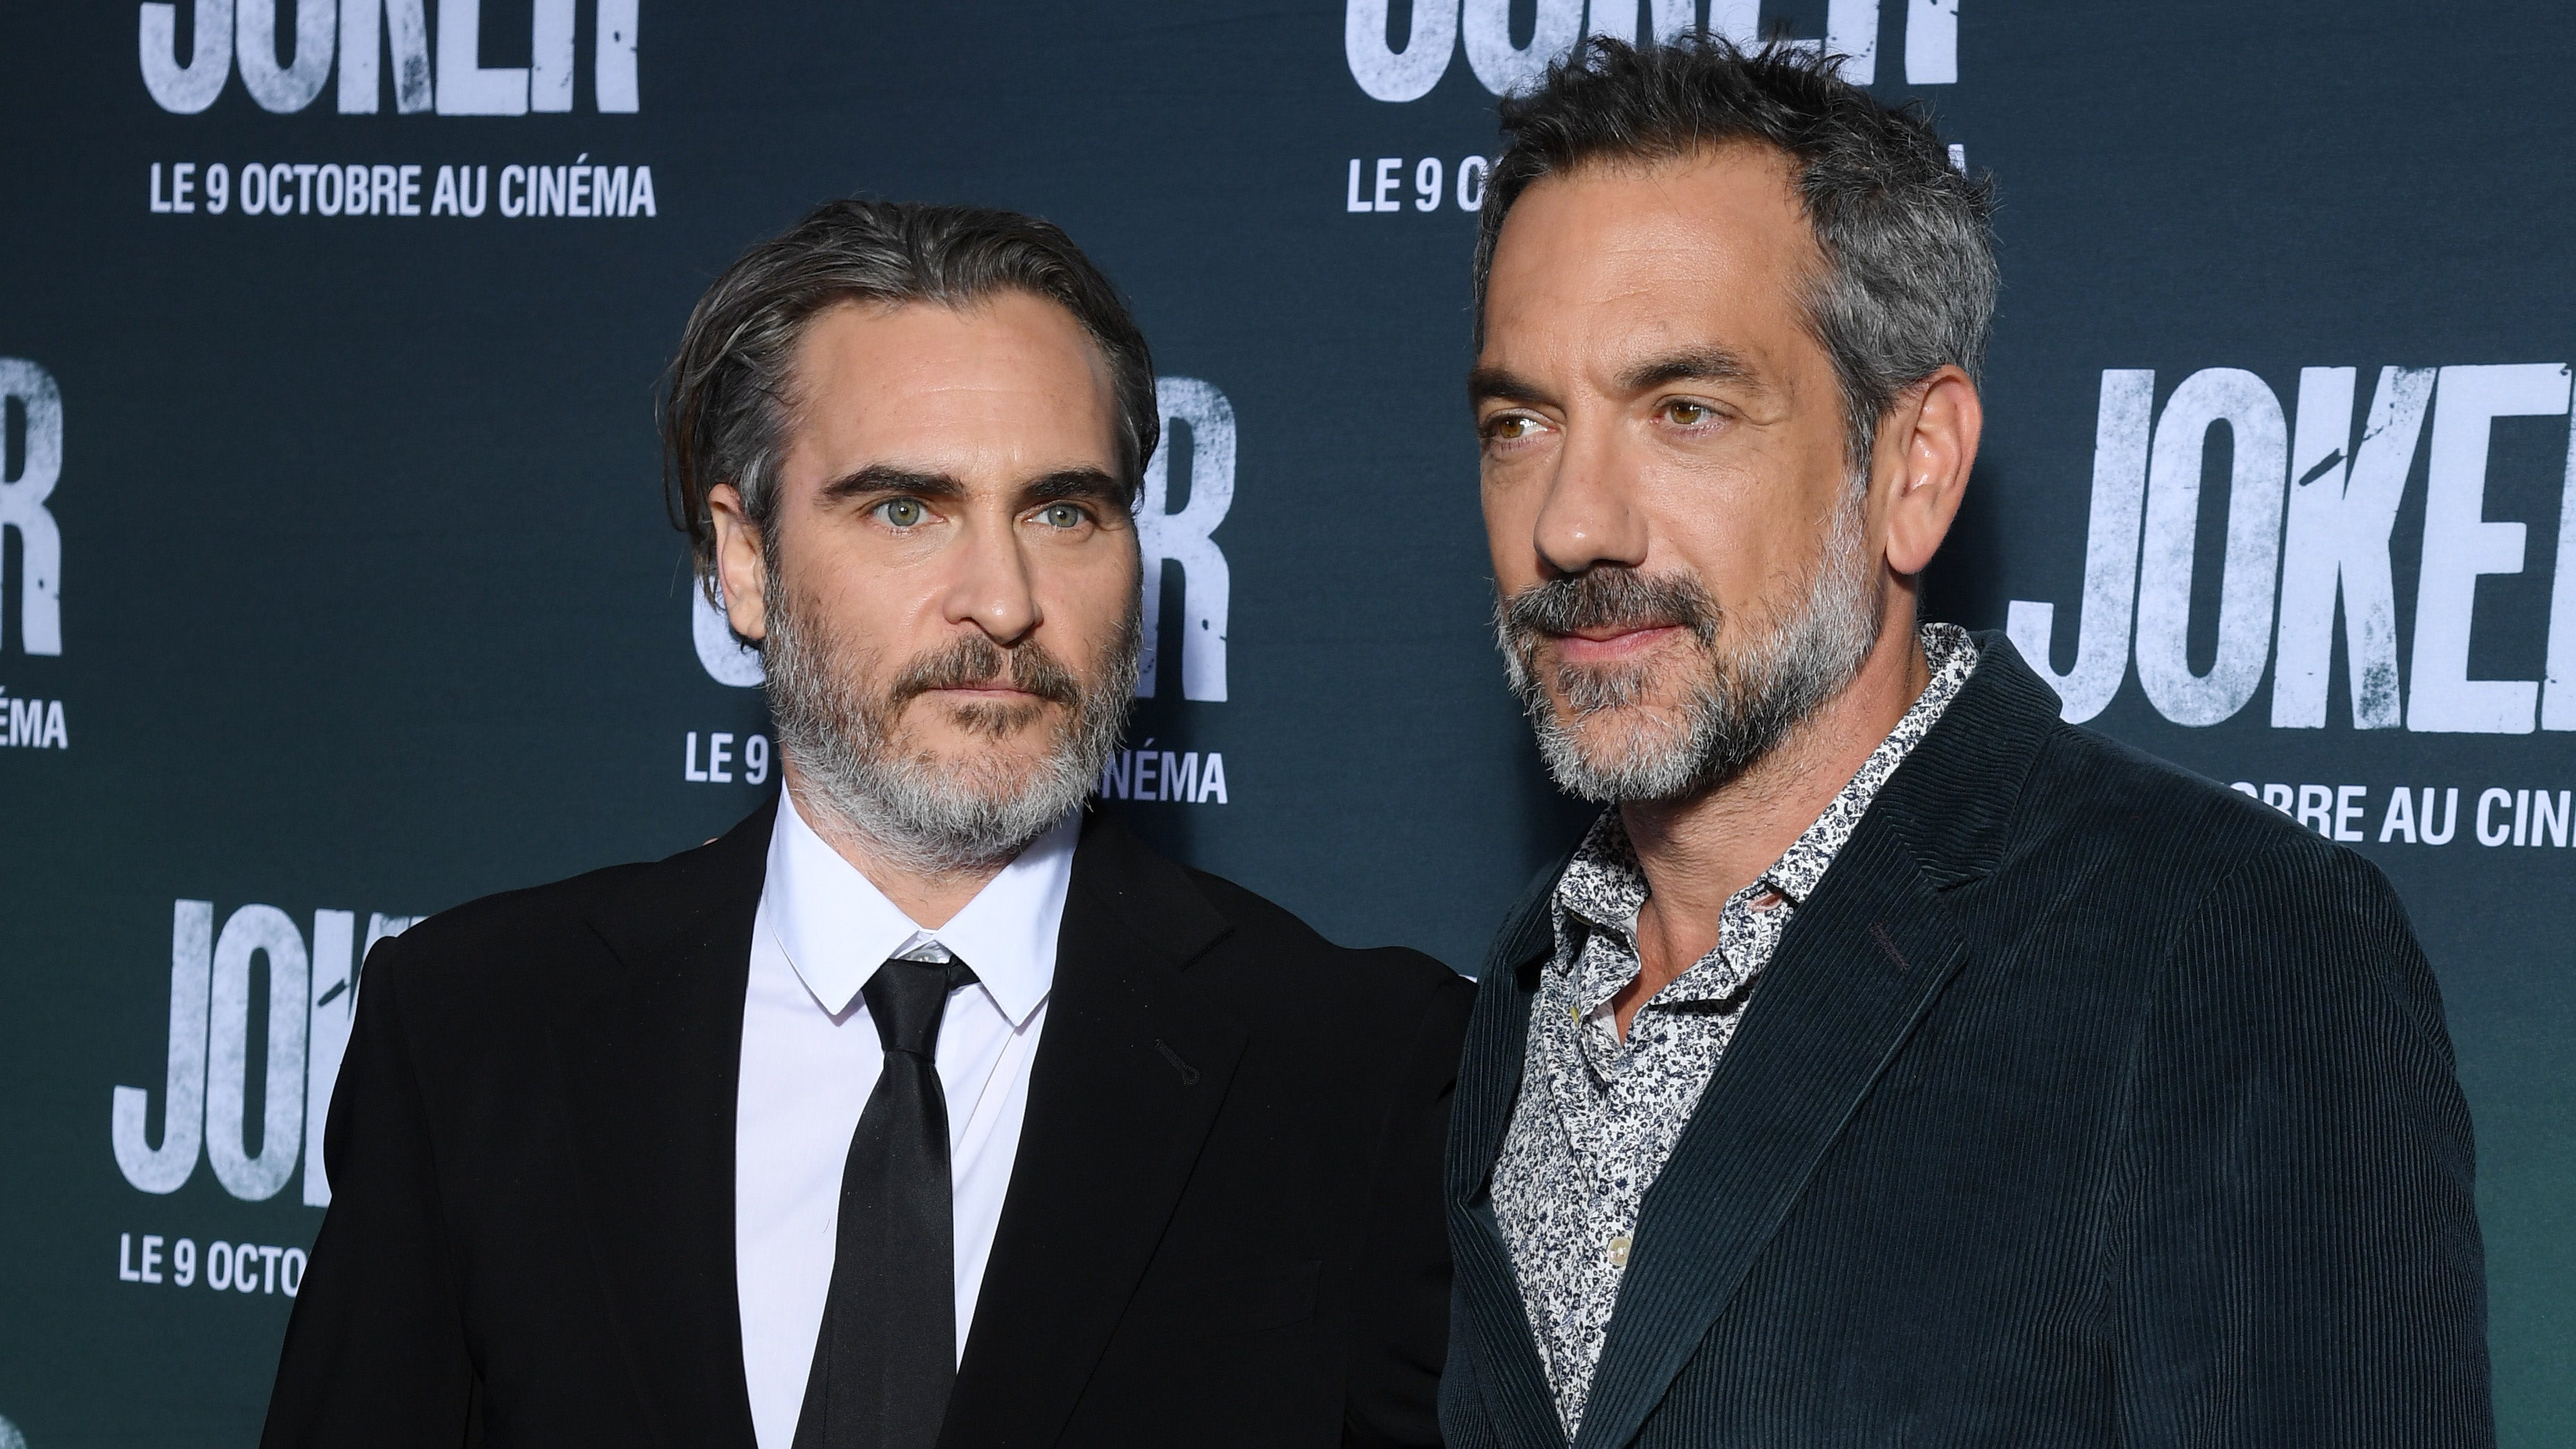 Todd Phillips And Joaquin Phoenix Really Want You To See Joker Before Passing Judgment